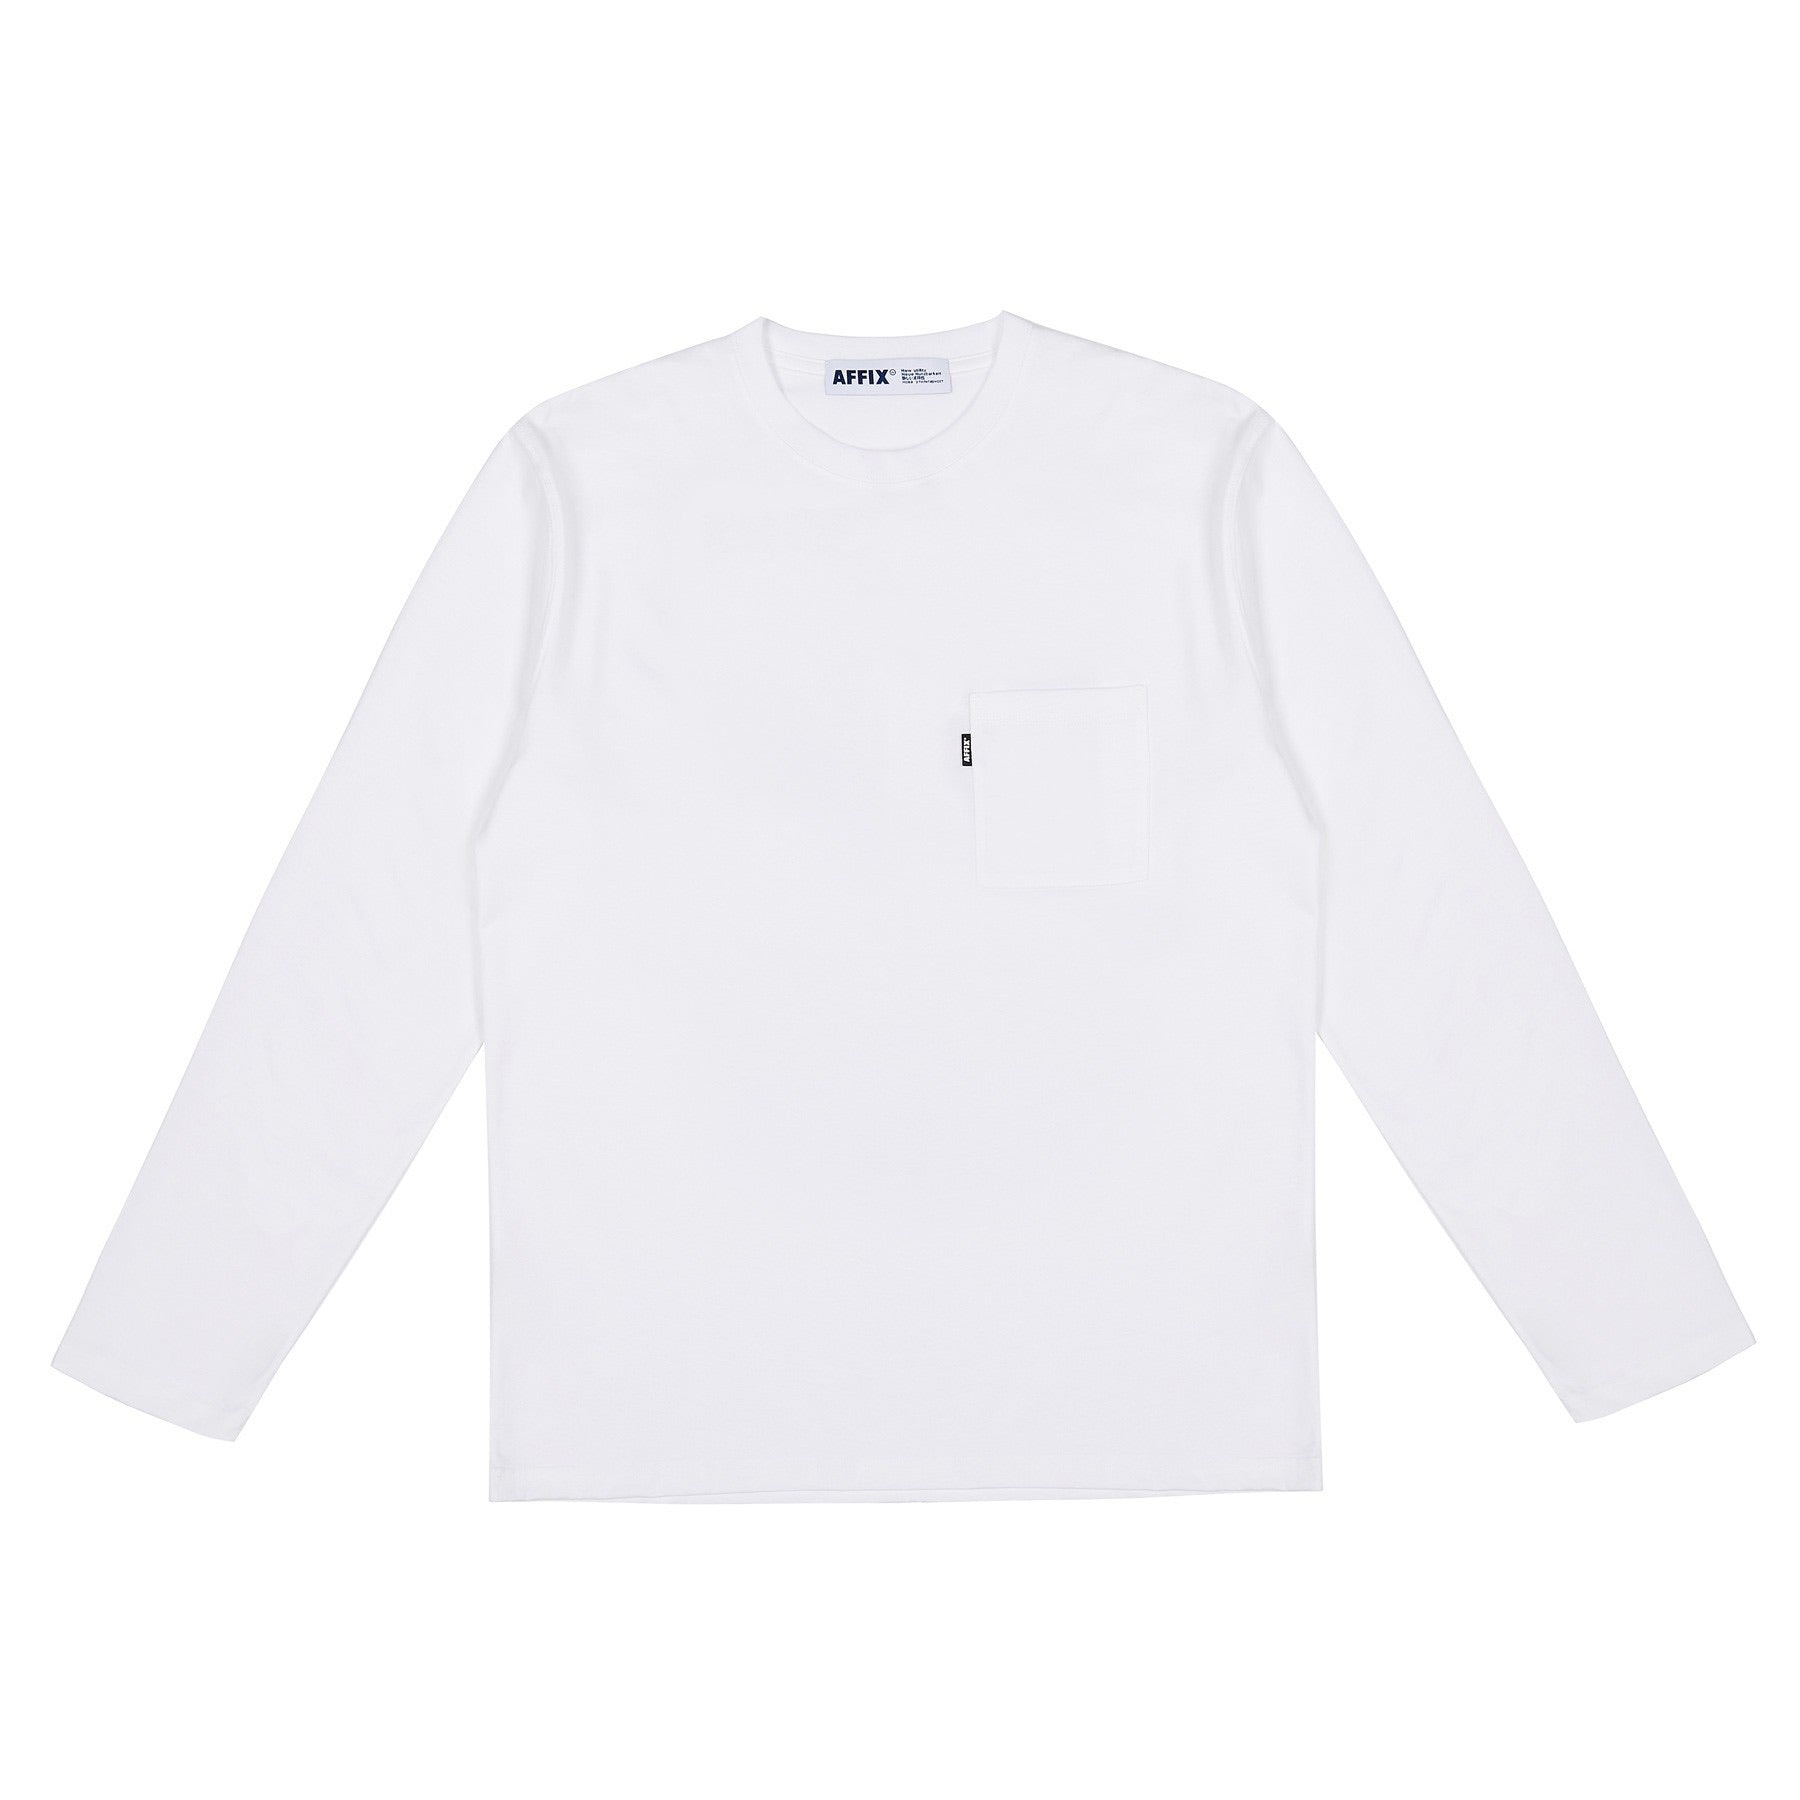 AFFIX LONG SLEEVE RADIO T-SHIRT